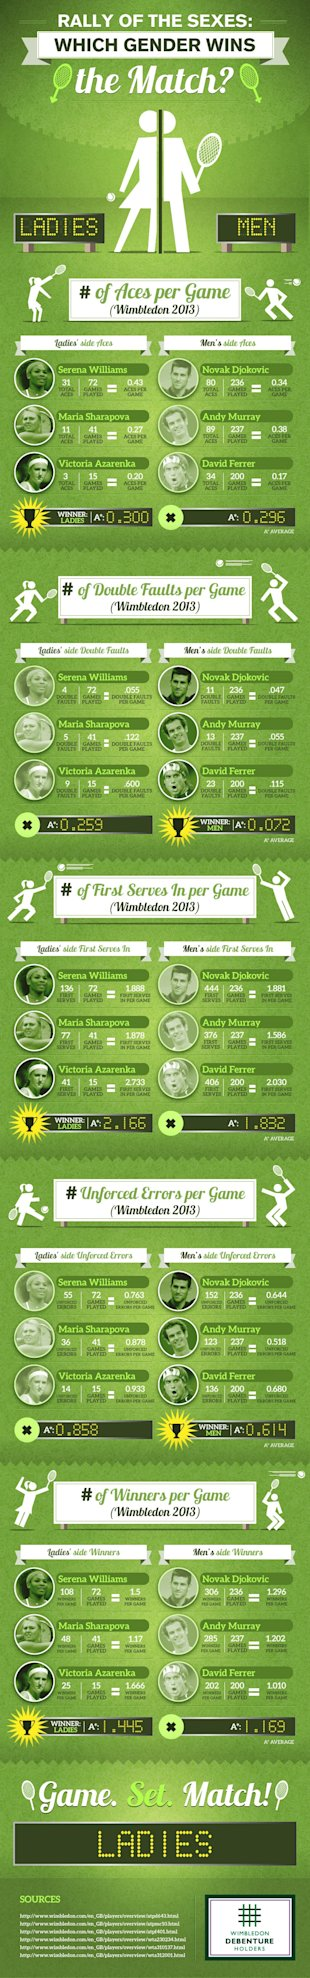 Rally of the Sexes: Which Gender Wins the Match? (Infographic) image Rally of the Sexes2